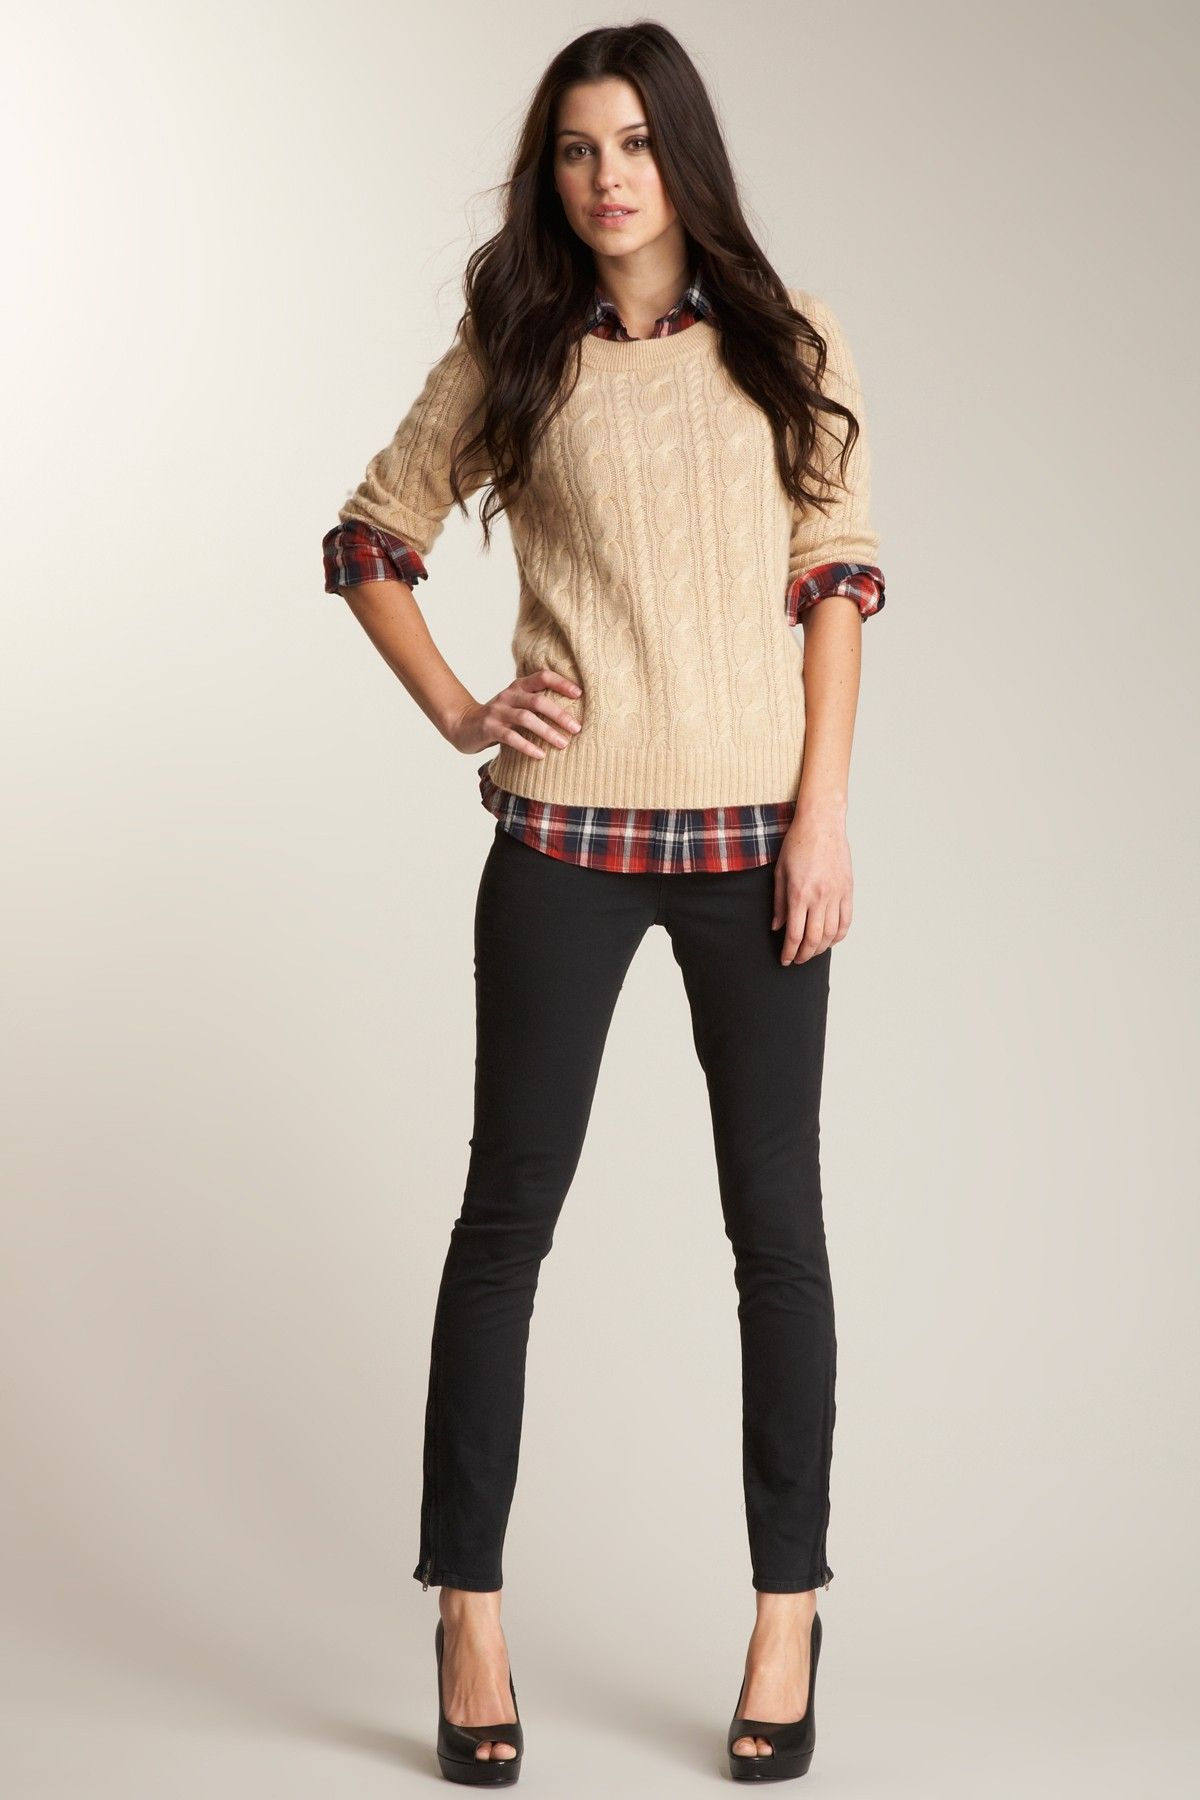 plaidorable | Fashionista | Pinterest | Plaid, Cable knitting and ...